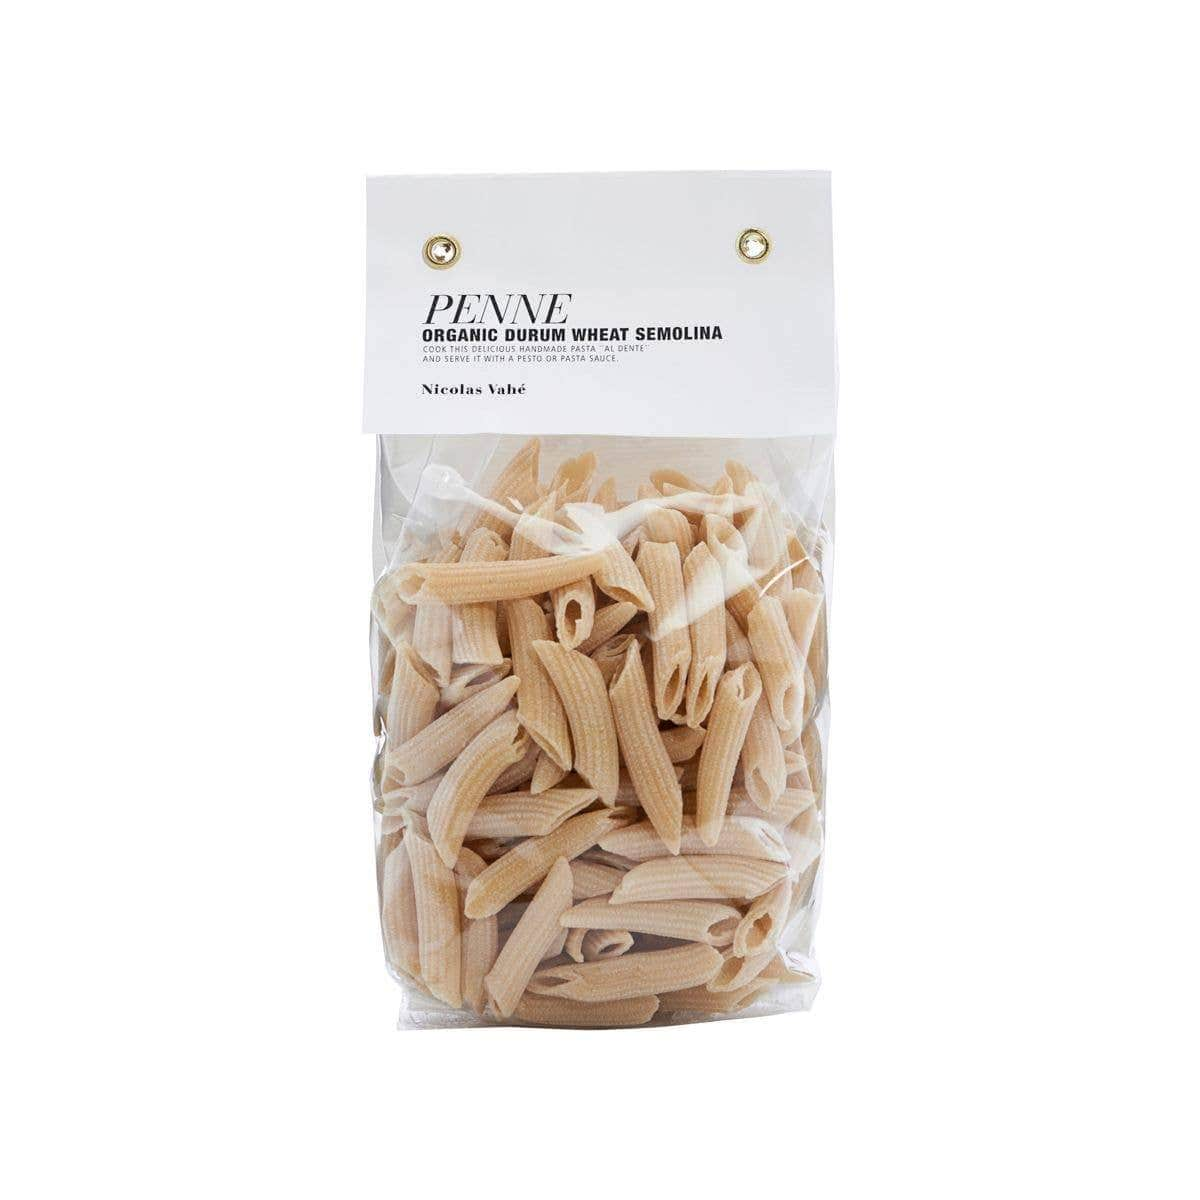 Society of Lifestyle Penne - Organic Durum Wheat Semolina, 250 g.